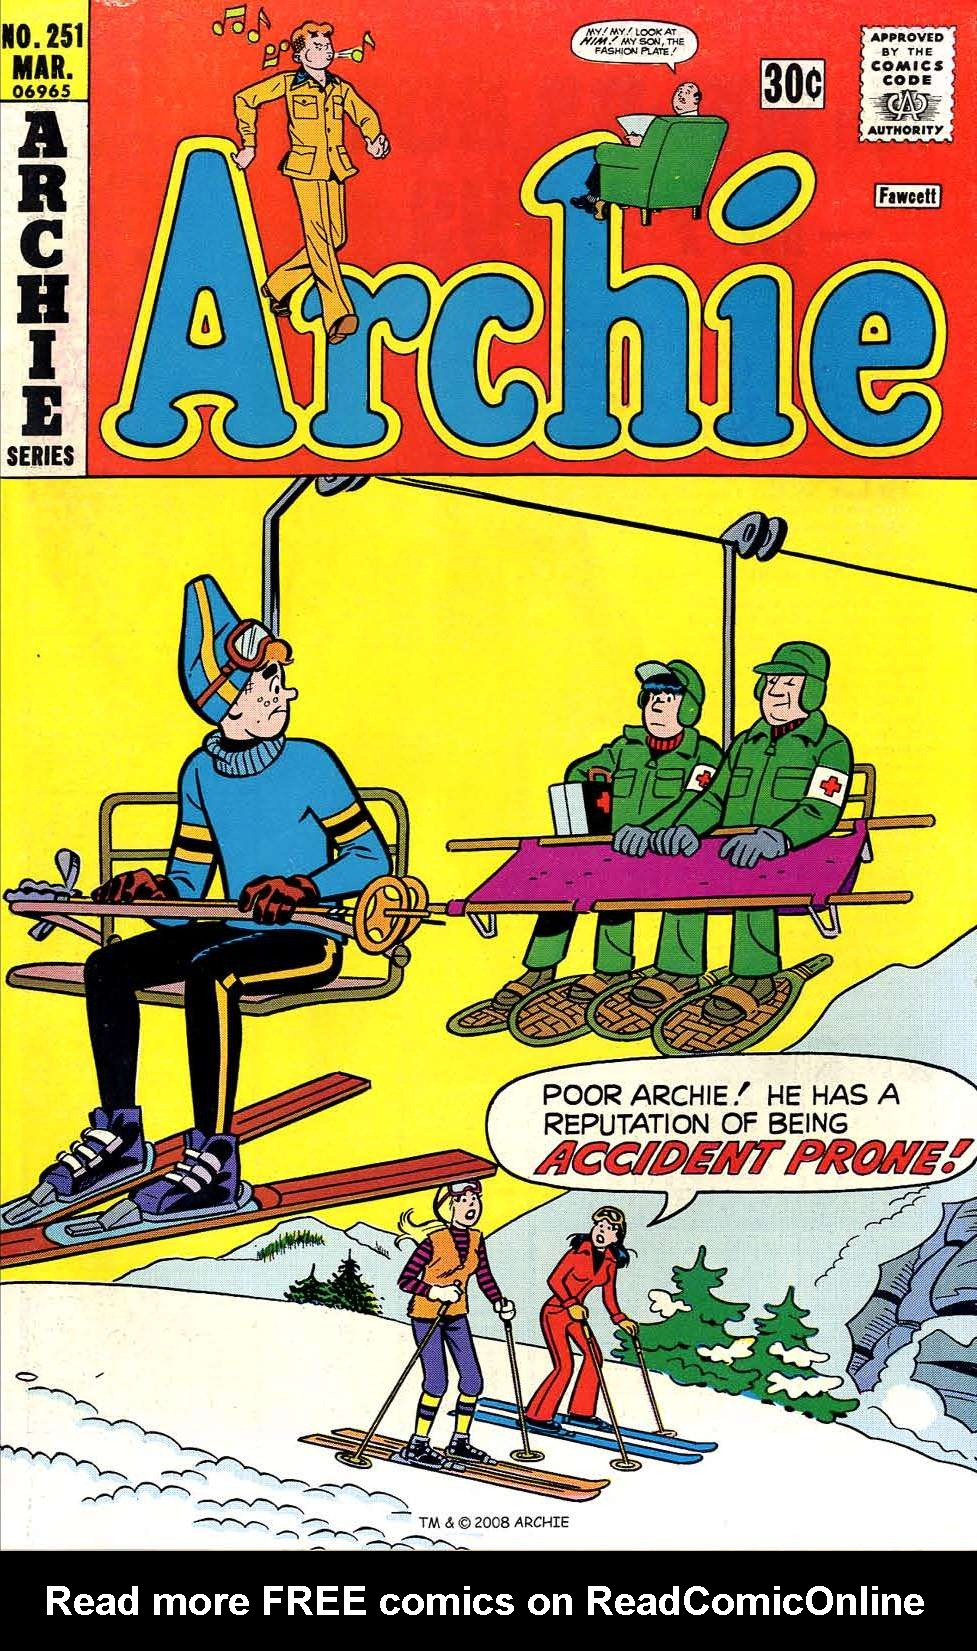 Read online Archie (1960) comic -  Issue #251 - 1